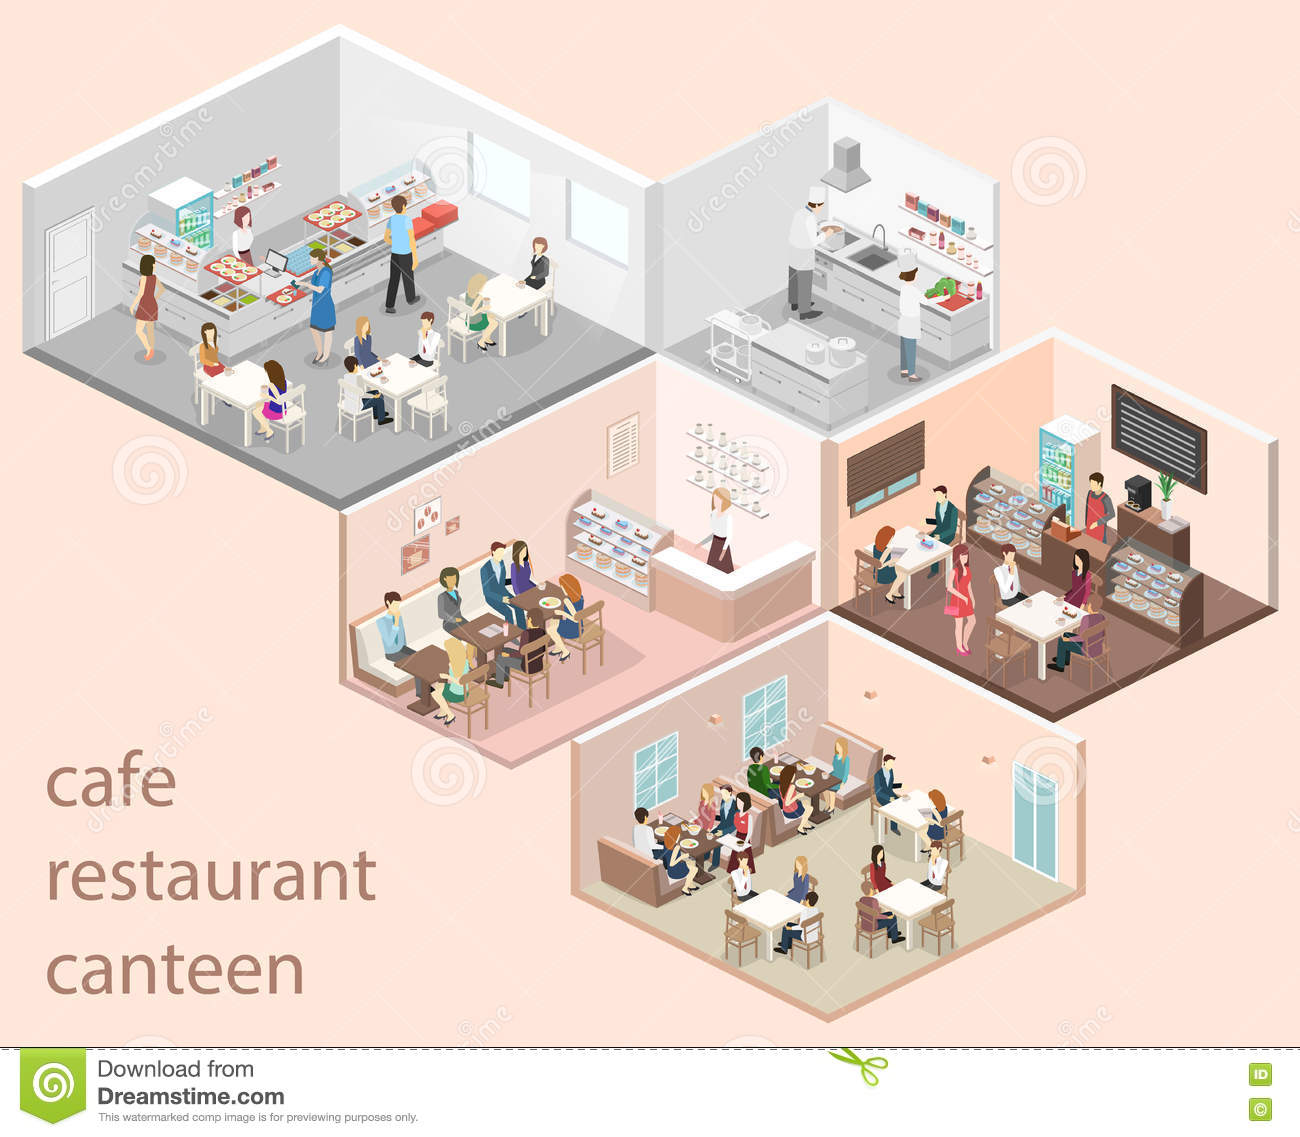 Isometric Flat 3D Concept Interior Cafe Canteen  : isometric flat d concept interior cafe canteen restaurant kitchen sweet shop people sit table eating 82683549 from www.dreamstime.com size 1300 x 1137 jpeg 142kB